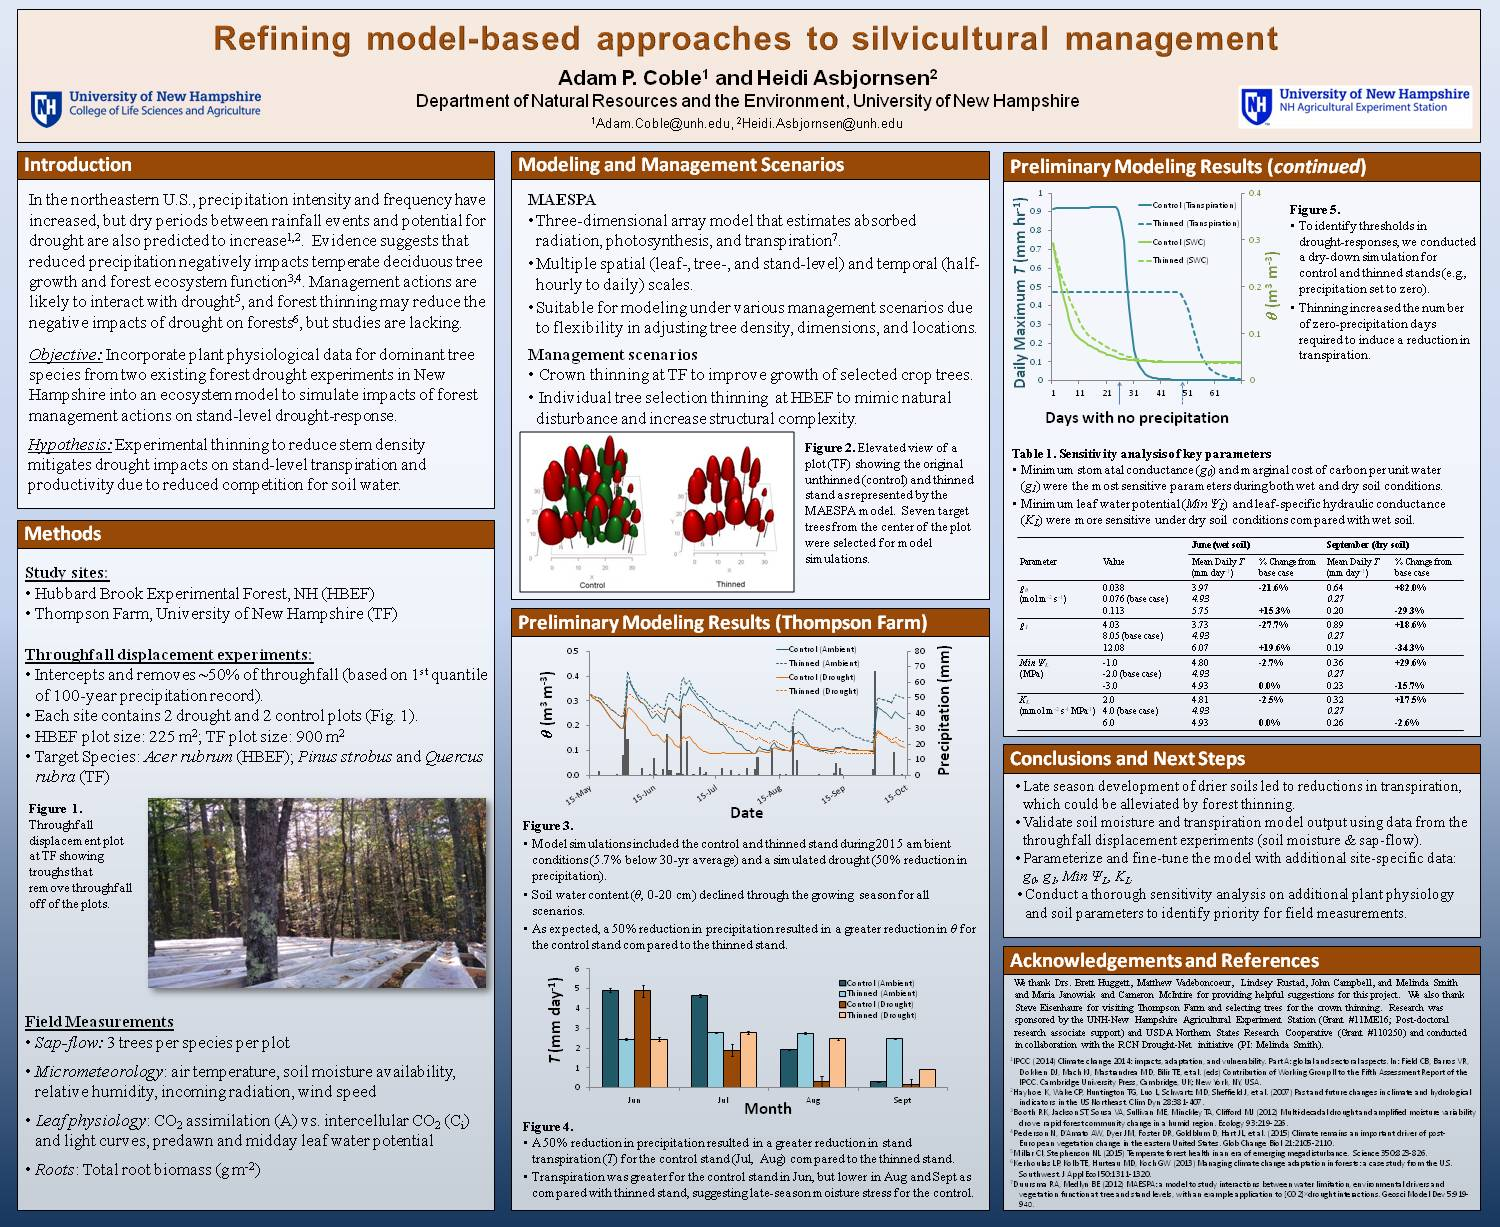 Refining Model-Based Approaches To Silvicultural Management by apc1016